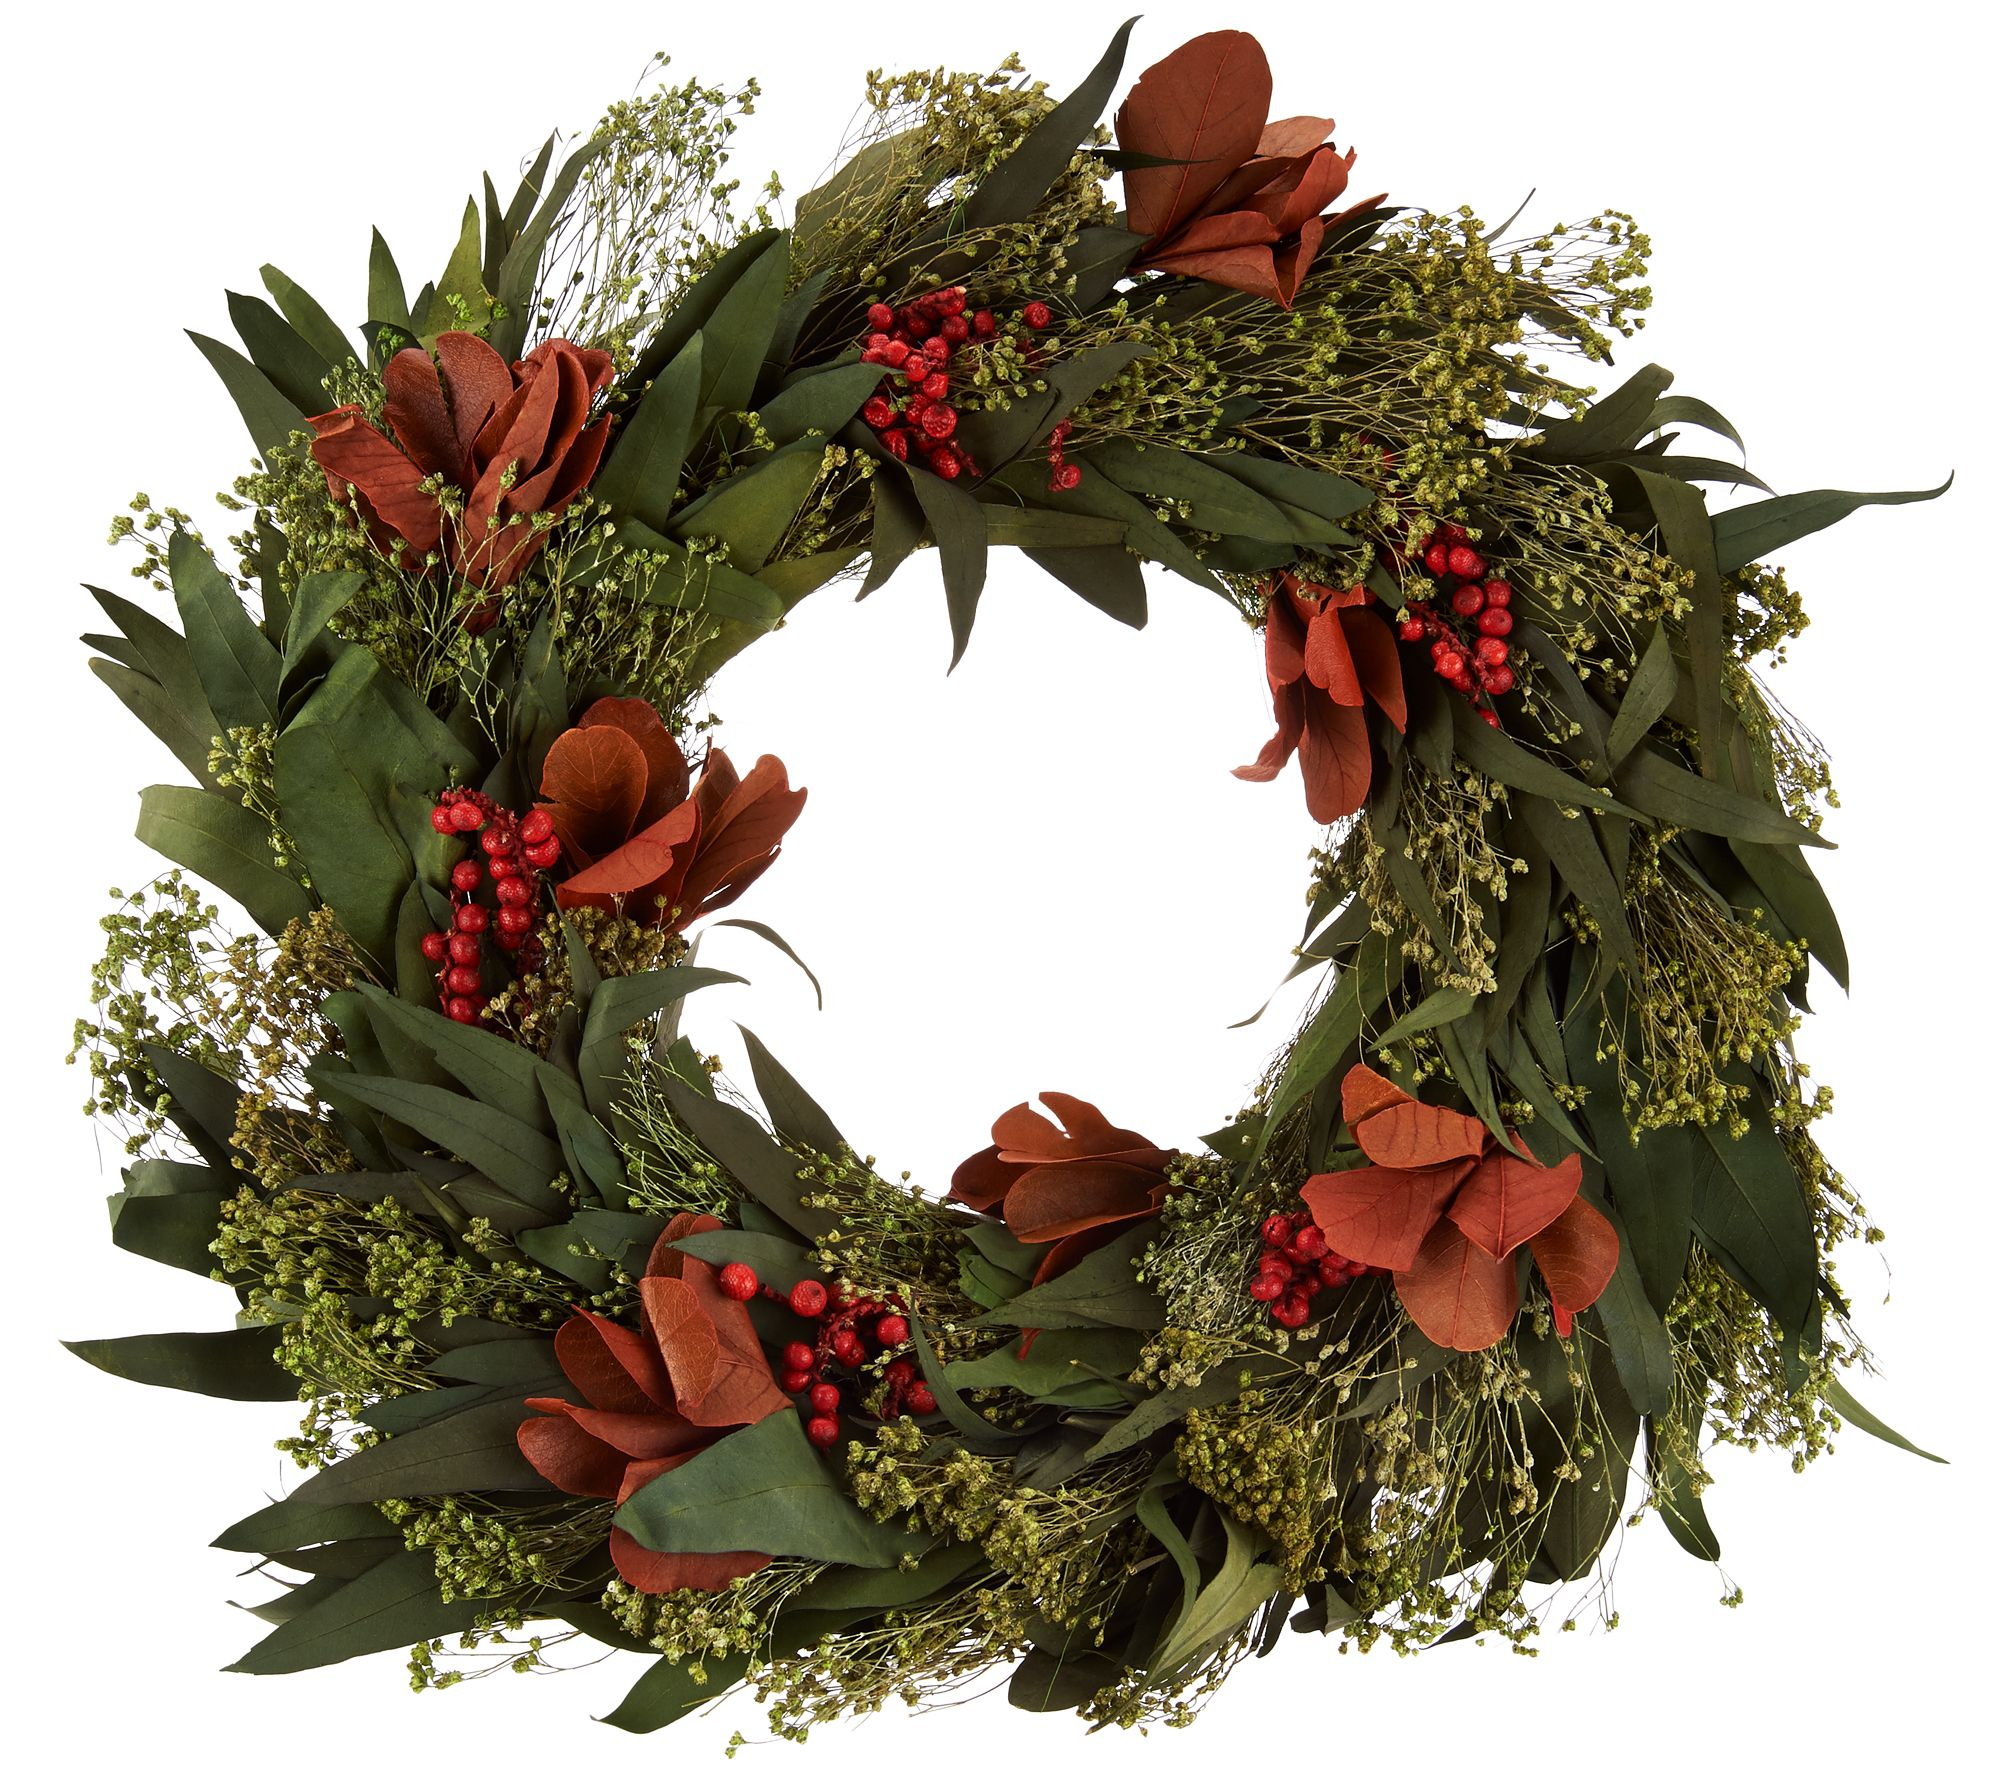 ed on air seasonal outdoor home decorations qvc com ed on air magnolia and berry preserved wreath by ellen degeneres h209662